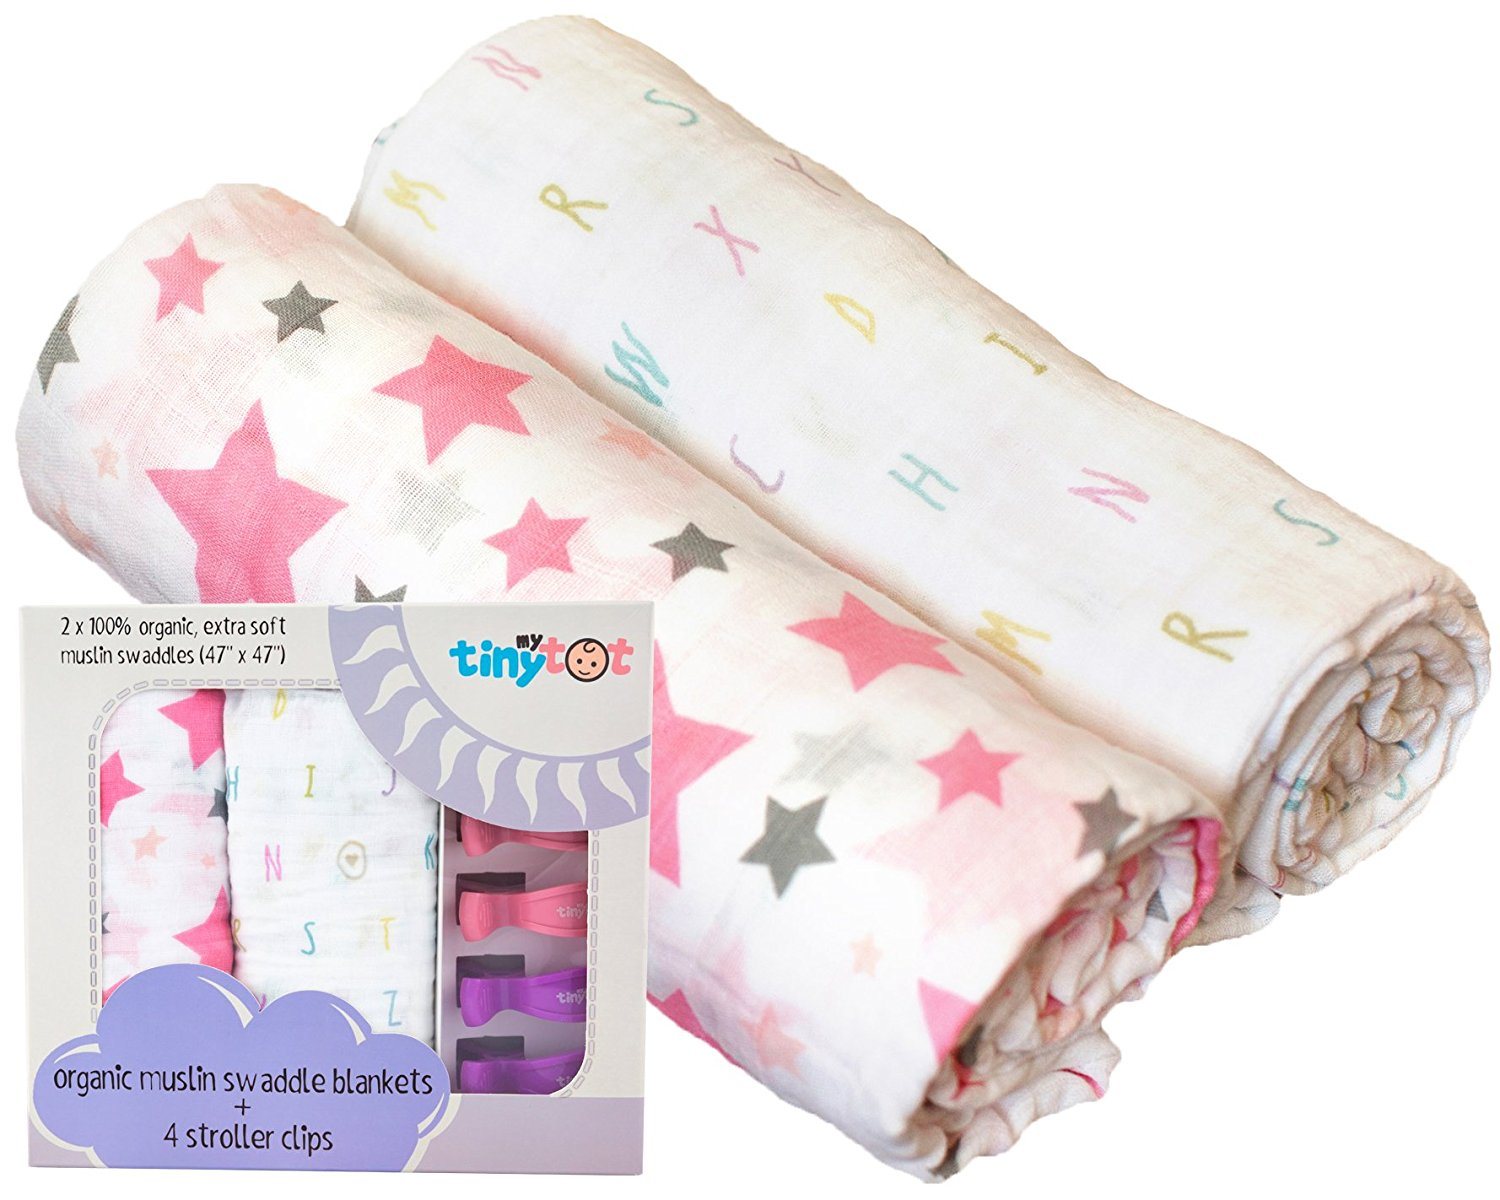 Organic Muslin Girl Swaddle Blanket & Extremely Soft, Use As a Receiving Blanket, Nursing, Cover, Stroller... by My Tiny Tot